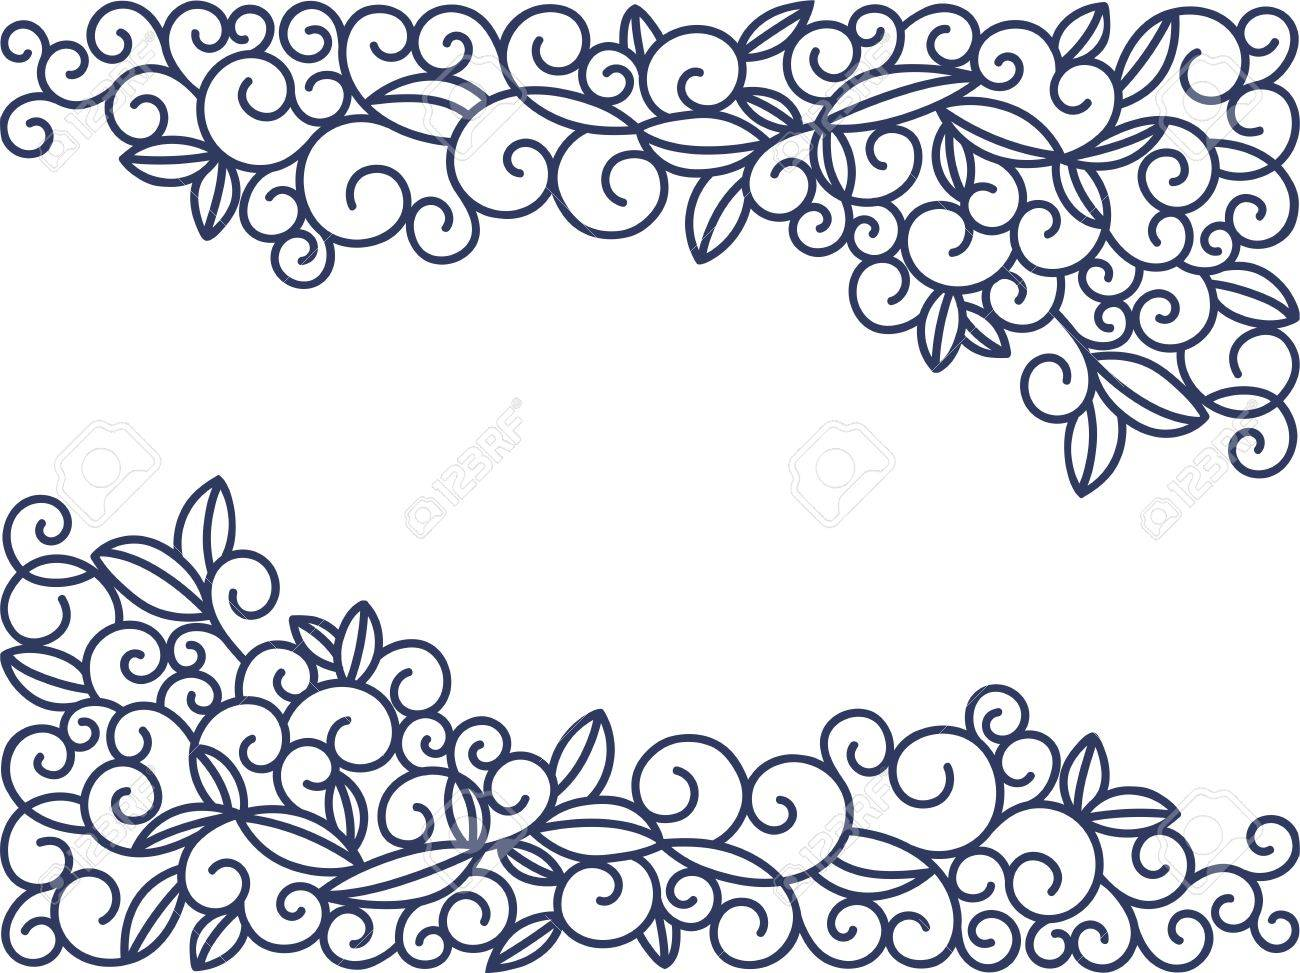 swirls vector illustration hand drawn line art design template rh 123rf com swirls vector illustration swirls vector png